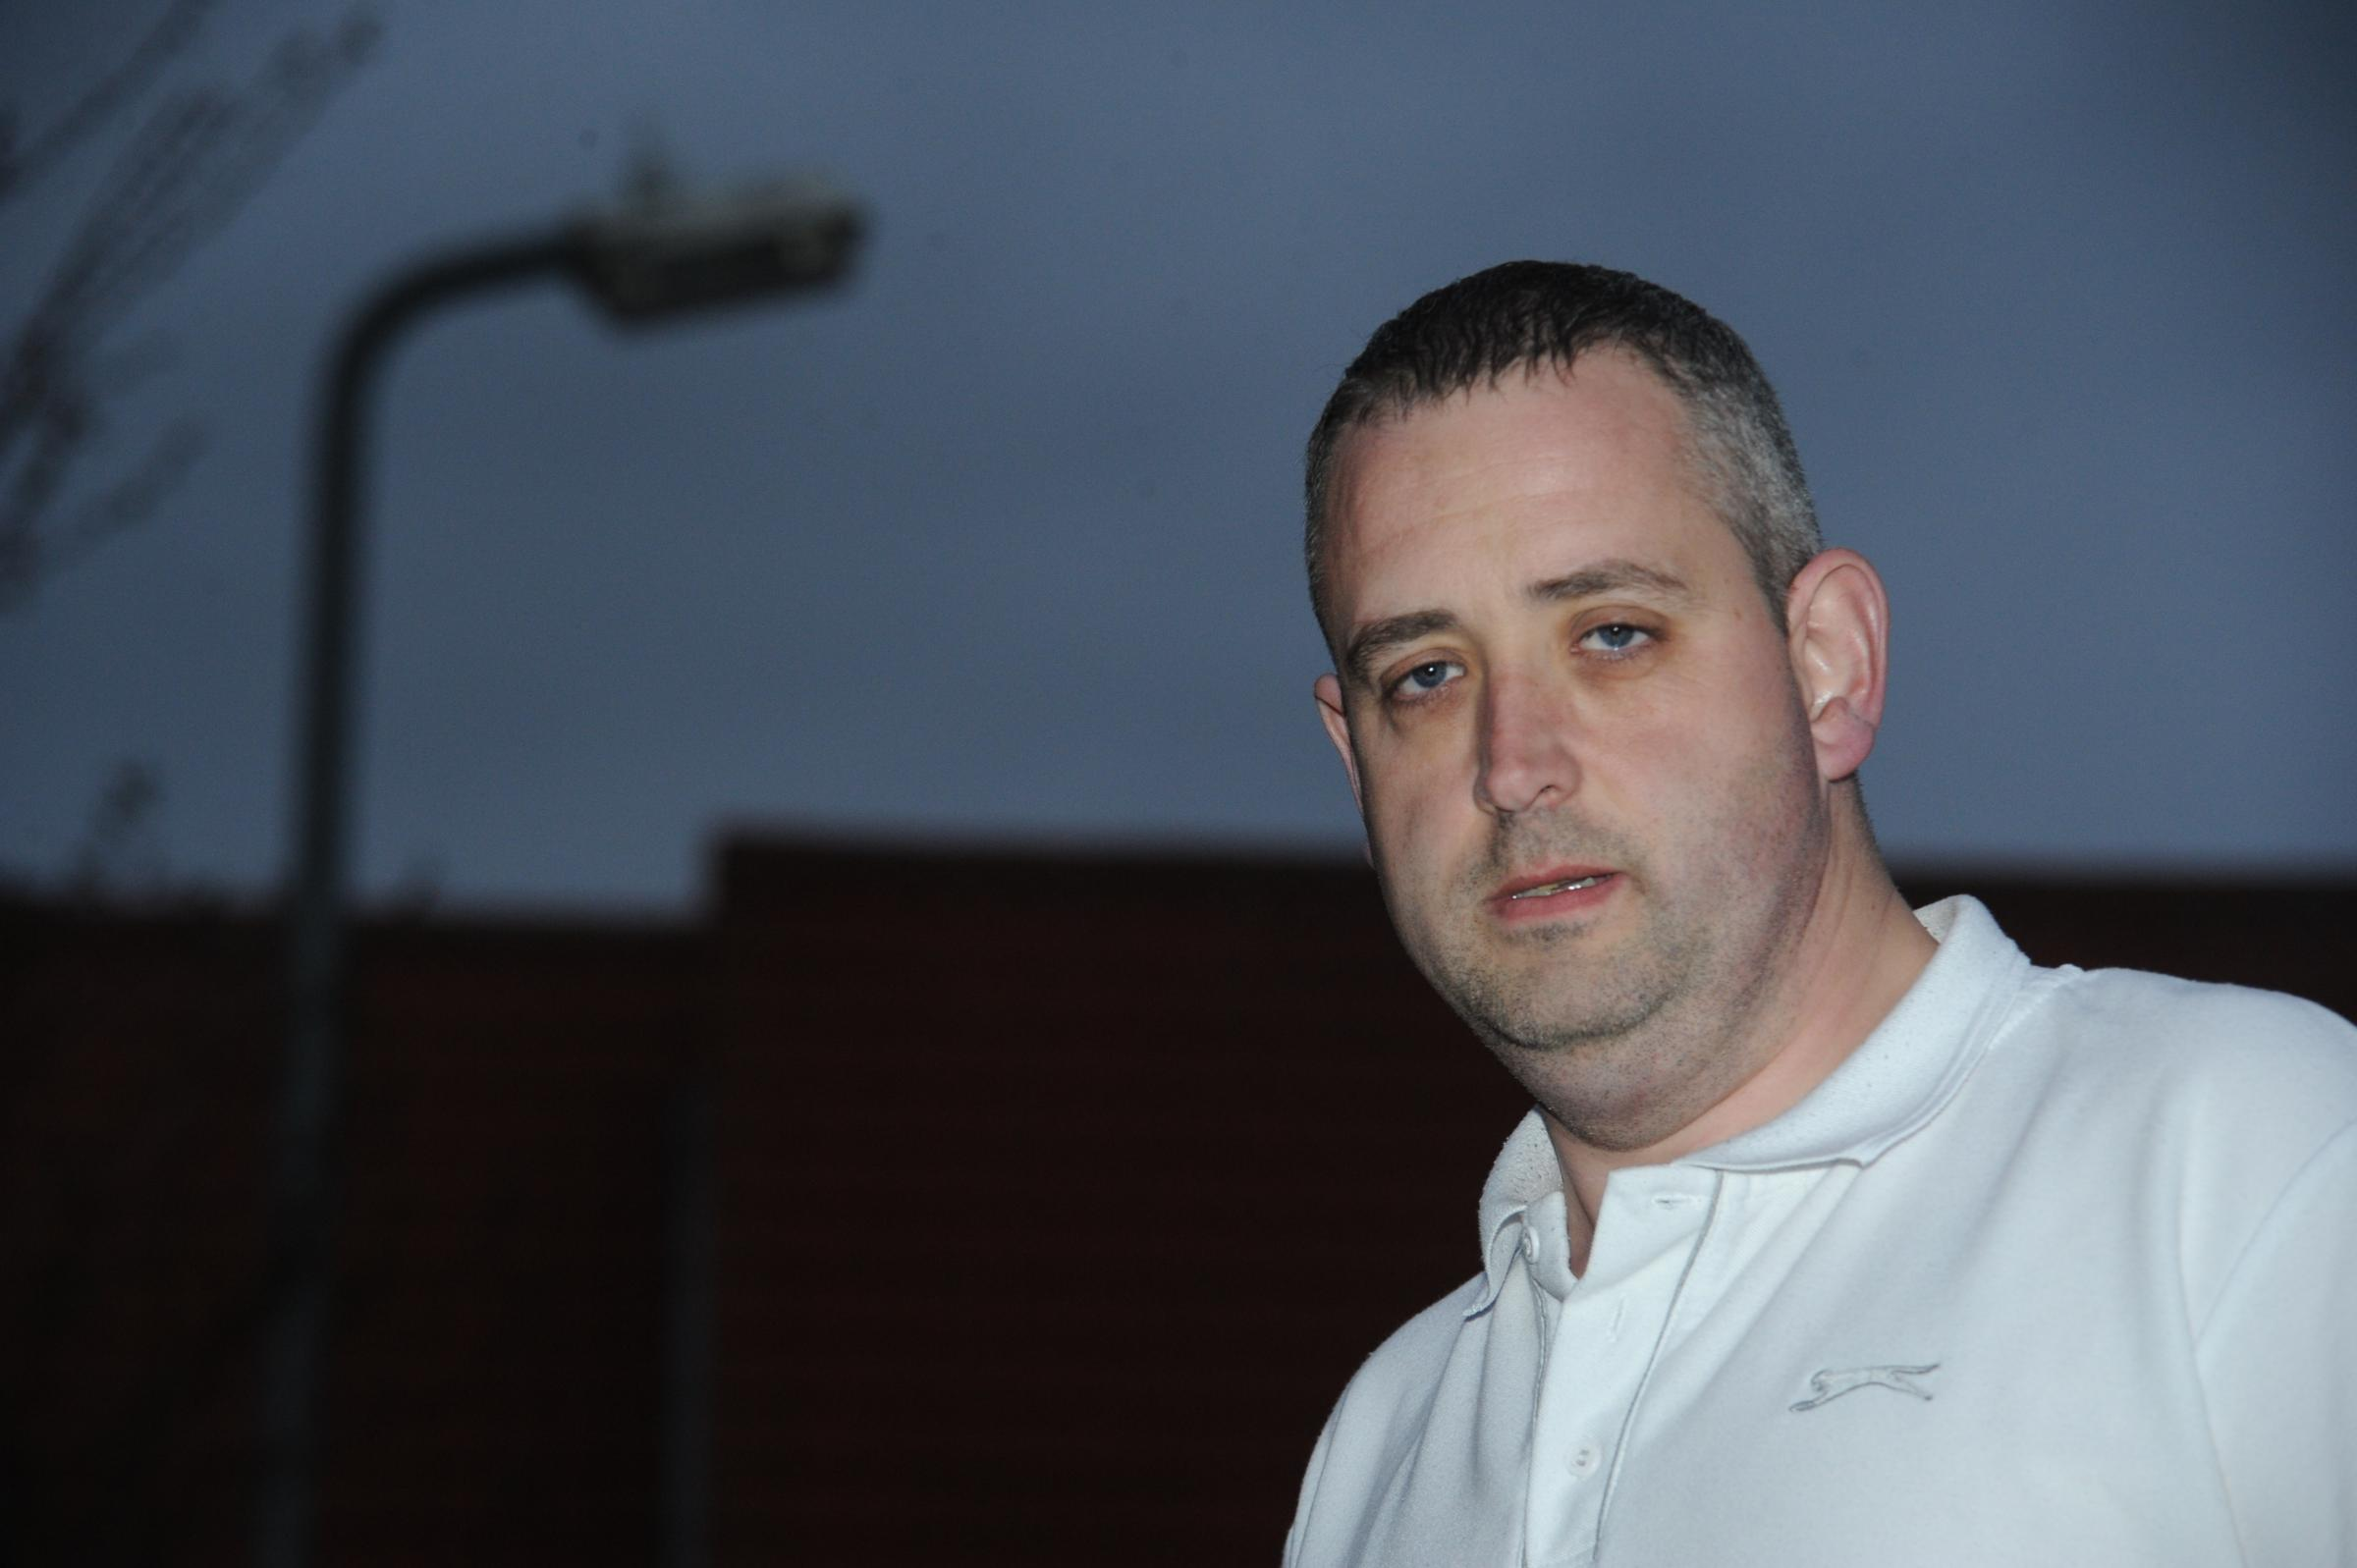 Security guard urges council to turn street lights back on after he was mugged